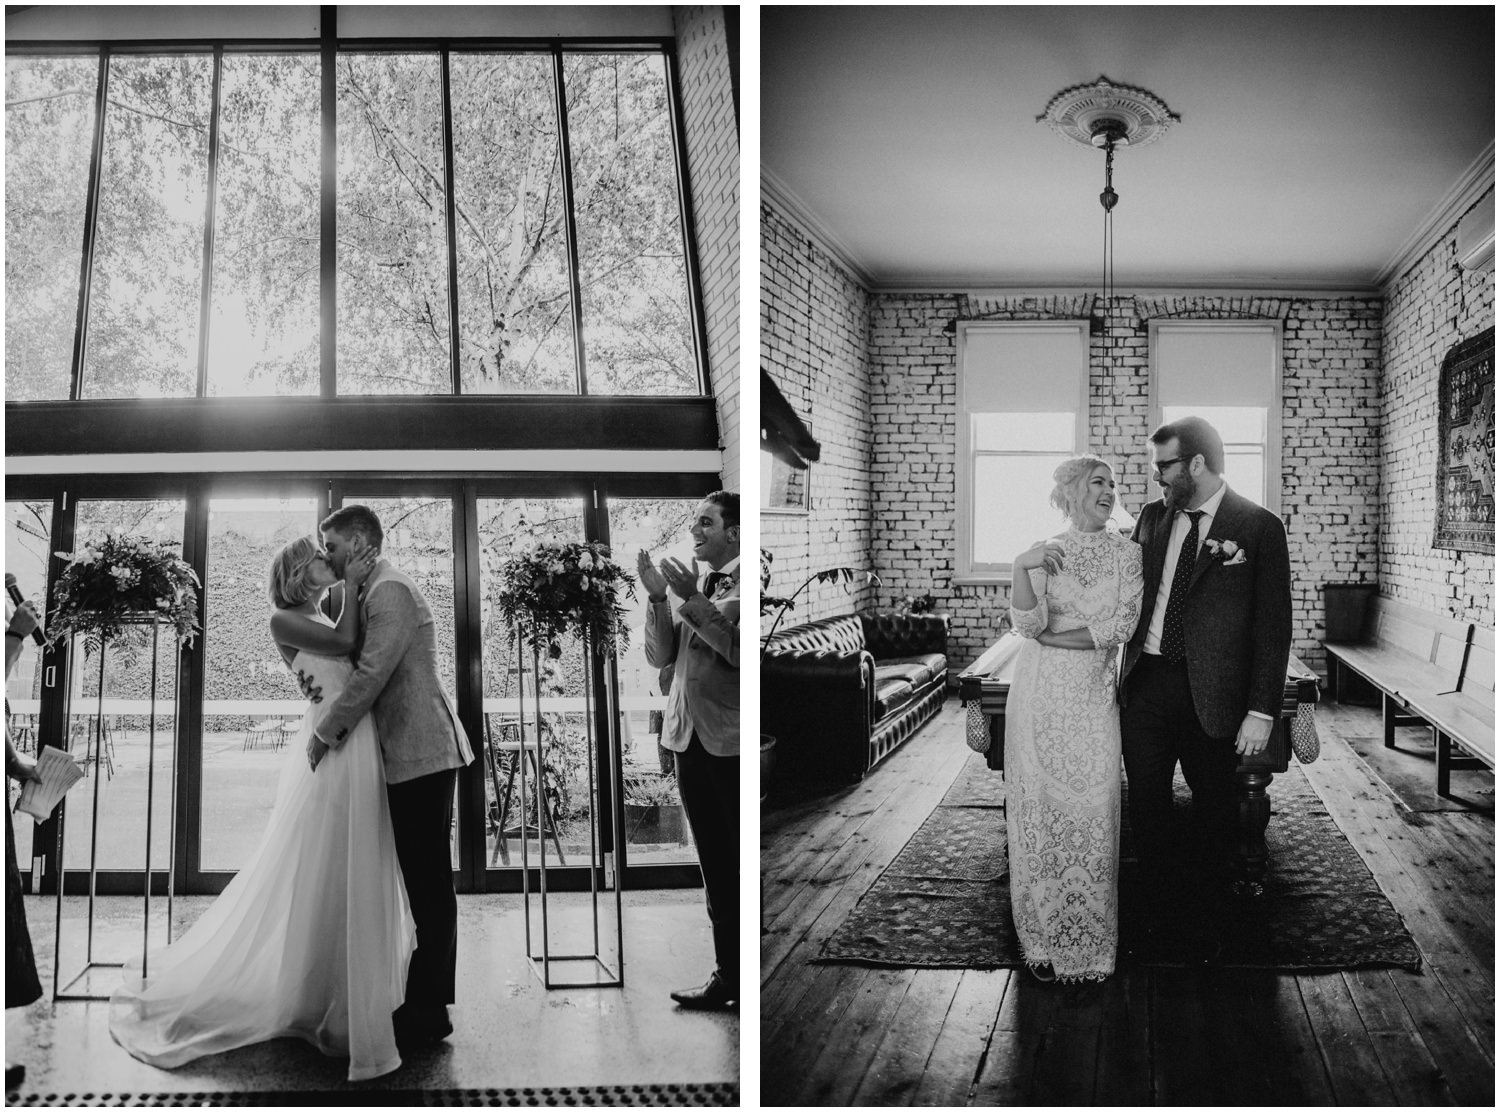 Melbourne Wedding Photographer - 2018 in review -185A0516.jpg